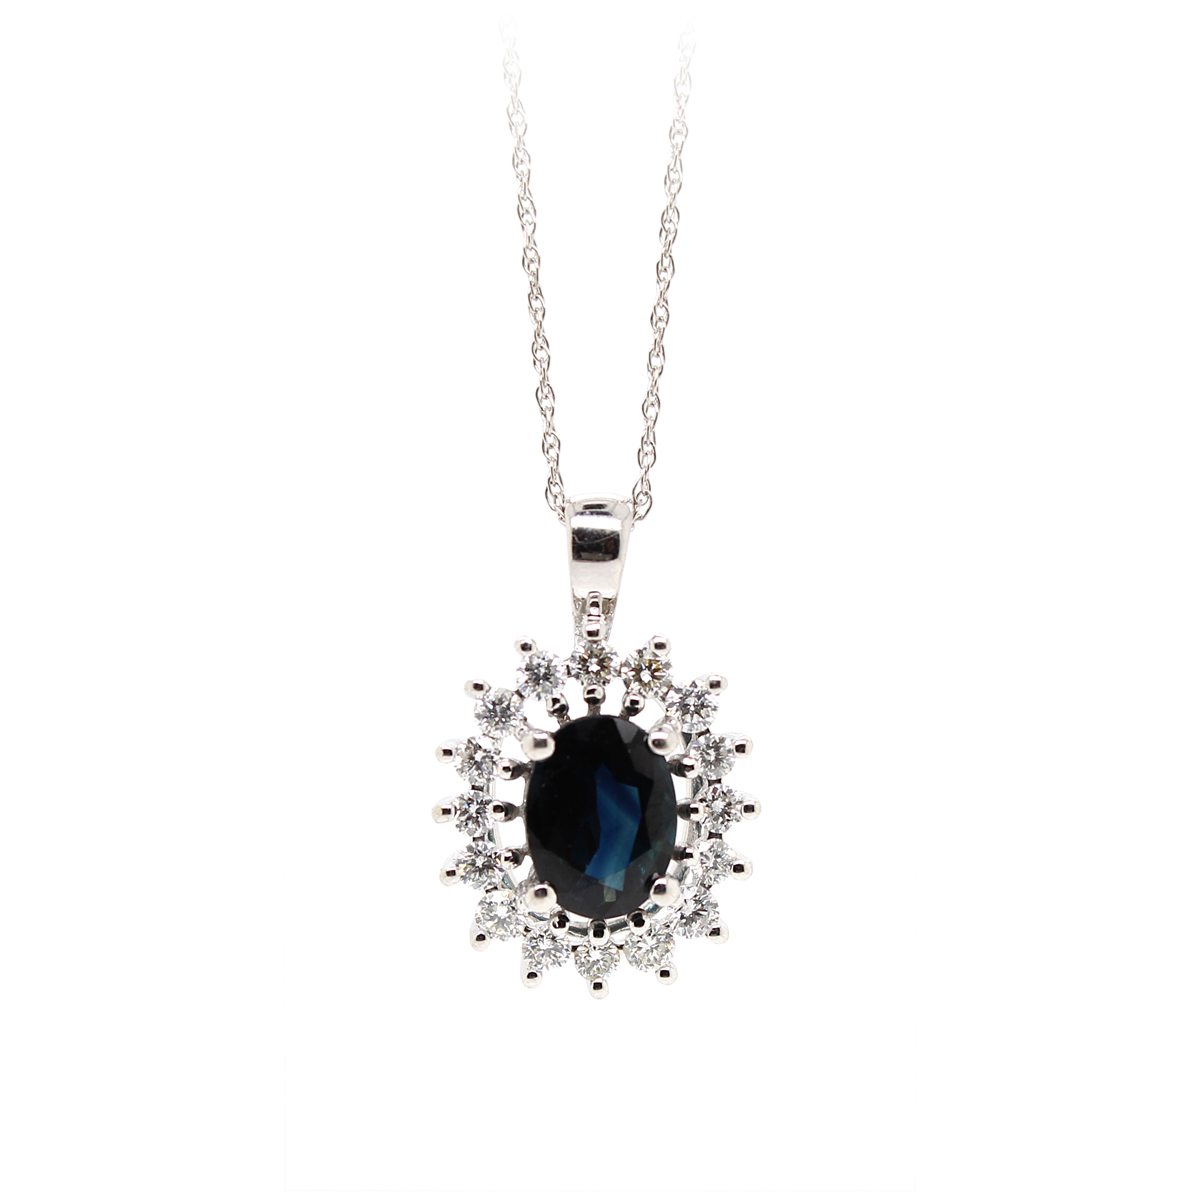 Vintage 14 Karat White Gold Blue Sapphire and Diamond Pendant Necklace